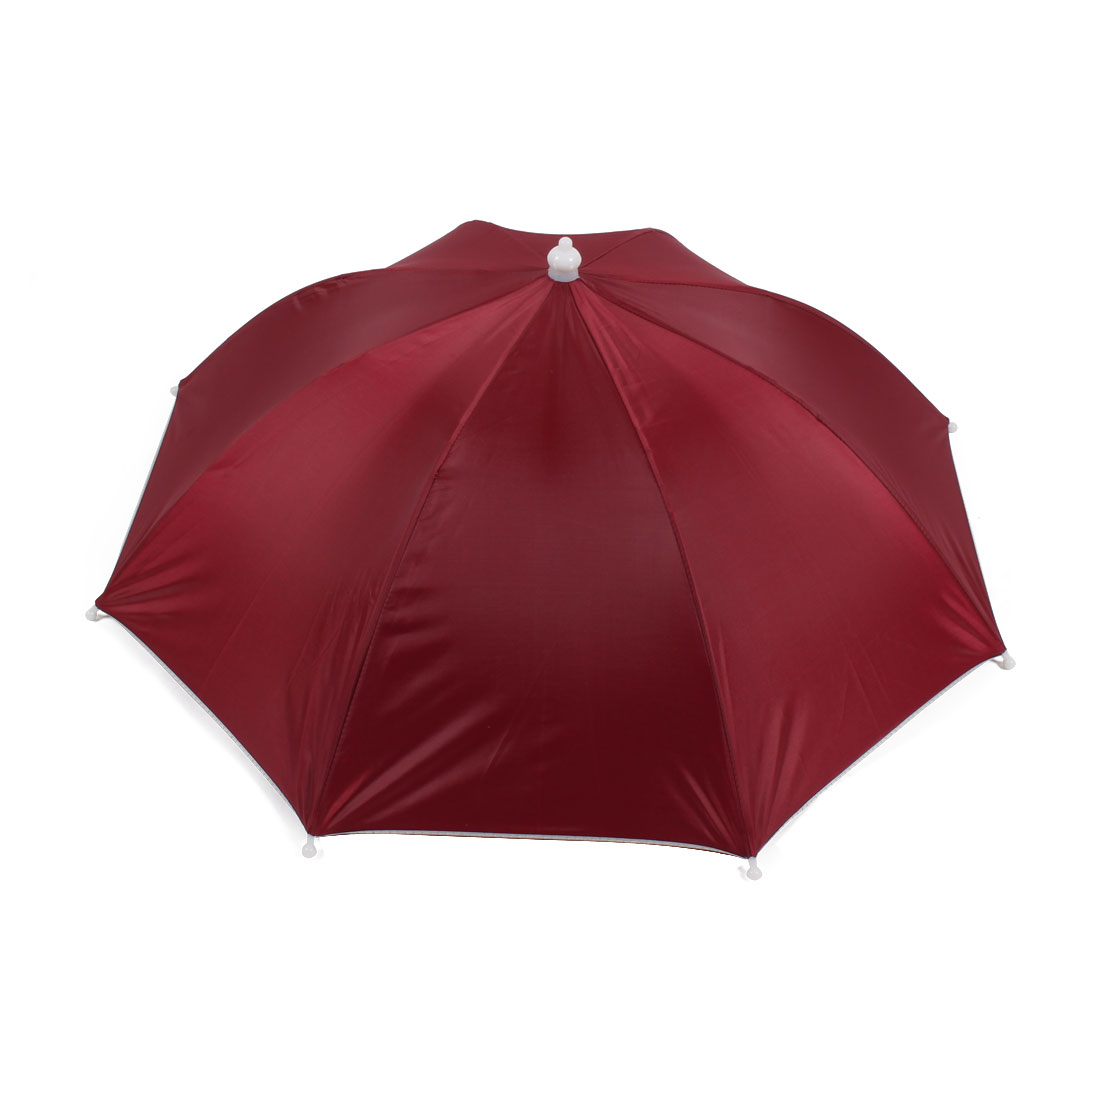 Outdoor Fishing Handsfree Umbrella Hat Headwear Burgundy